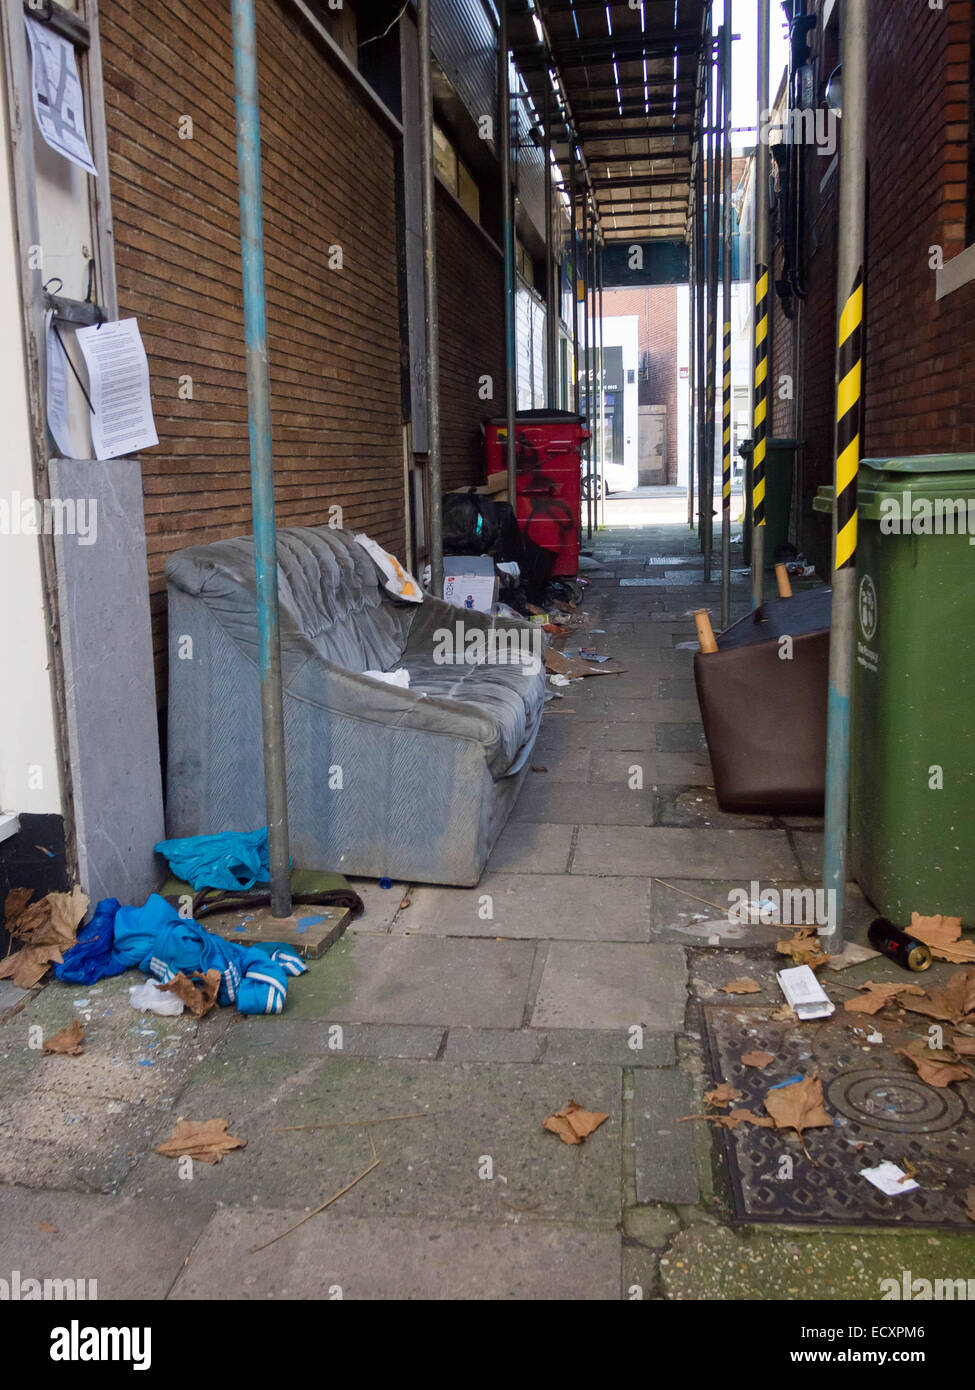 Fly tip in a side alley, containing Sofa's and refuse bags - Stock Image